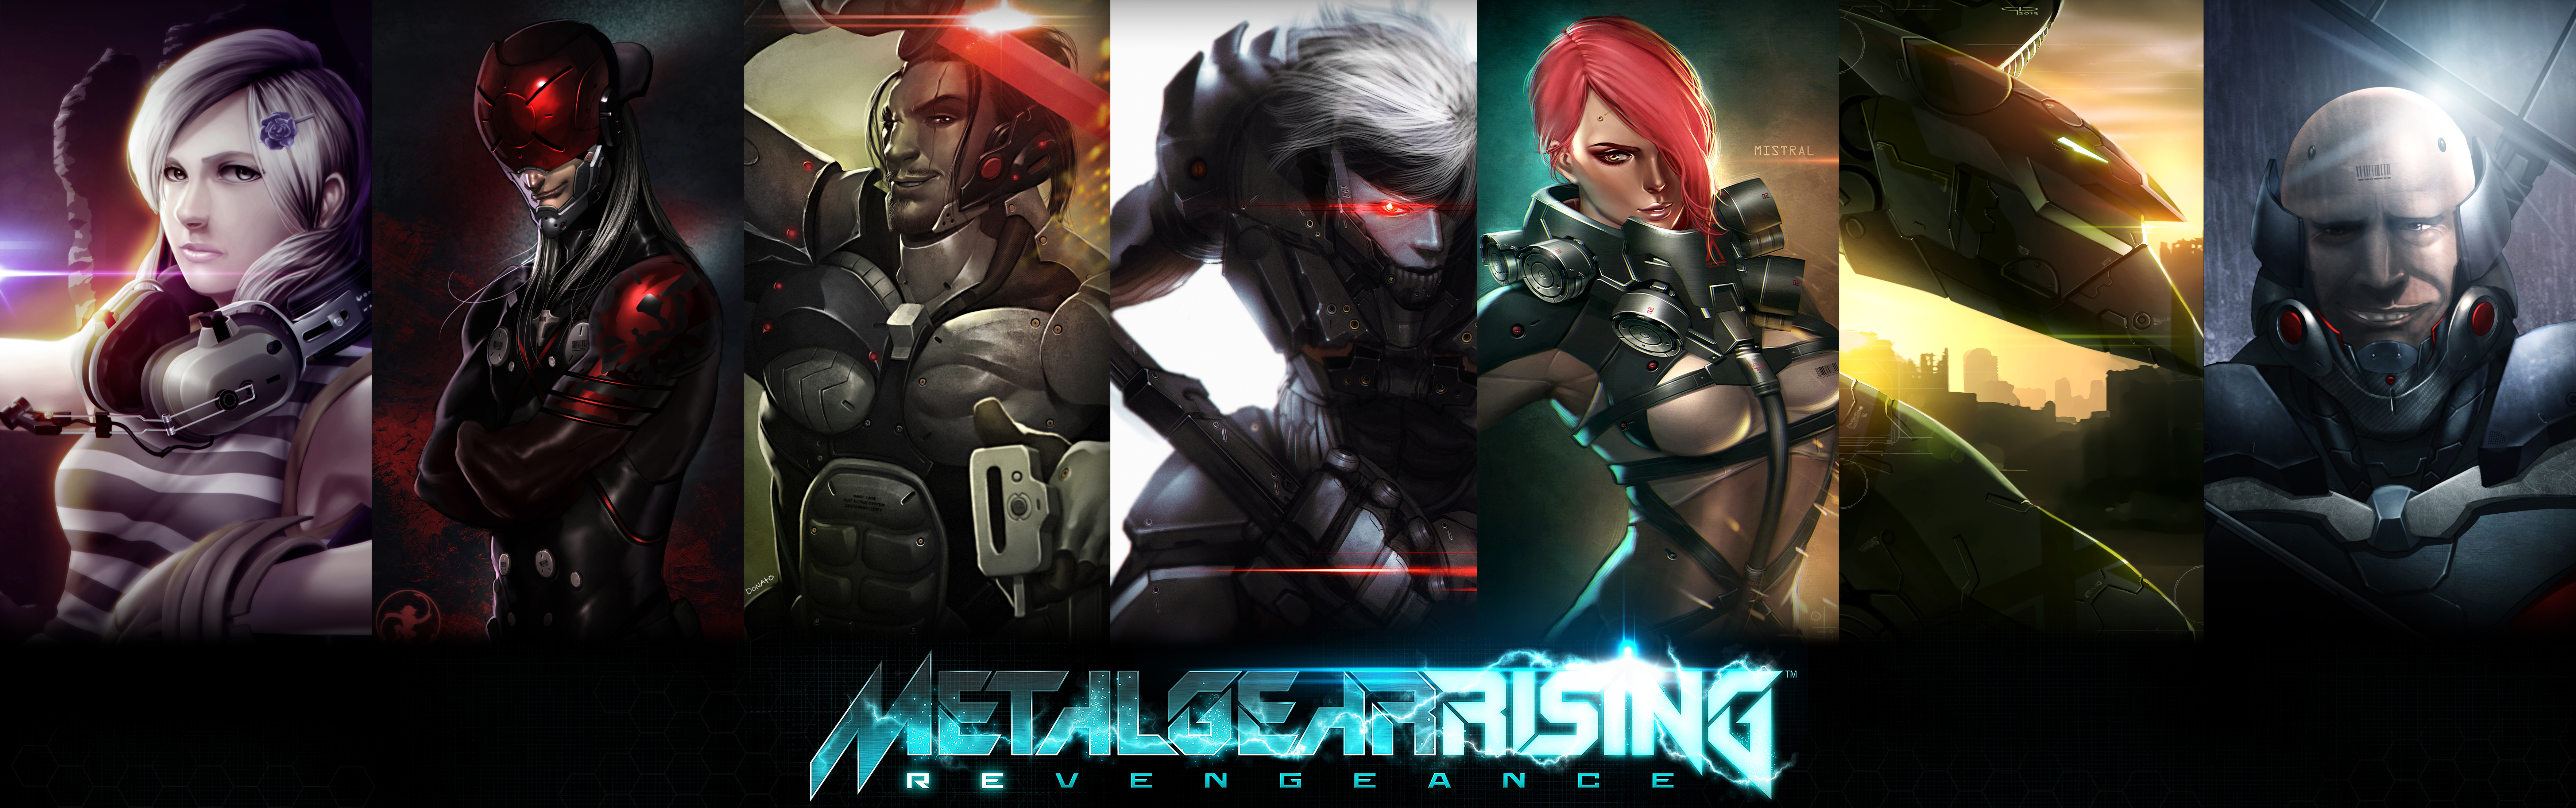 Download Wallpaper Art Sam Raiden Metal Gear Rising Revengeance